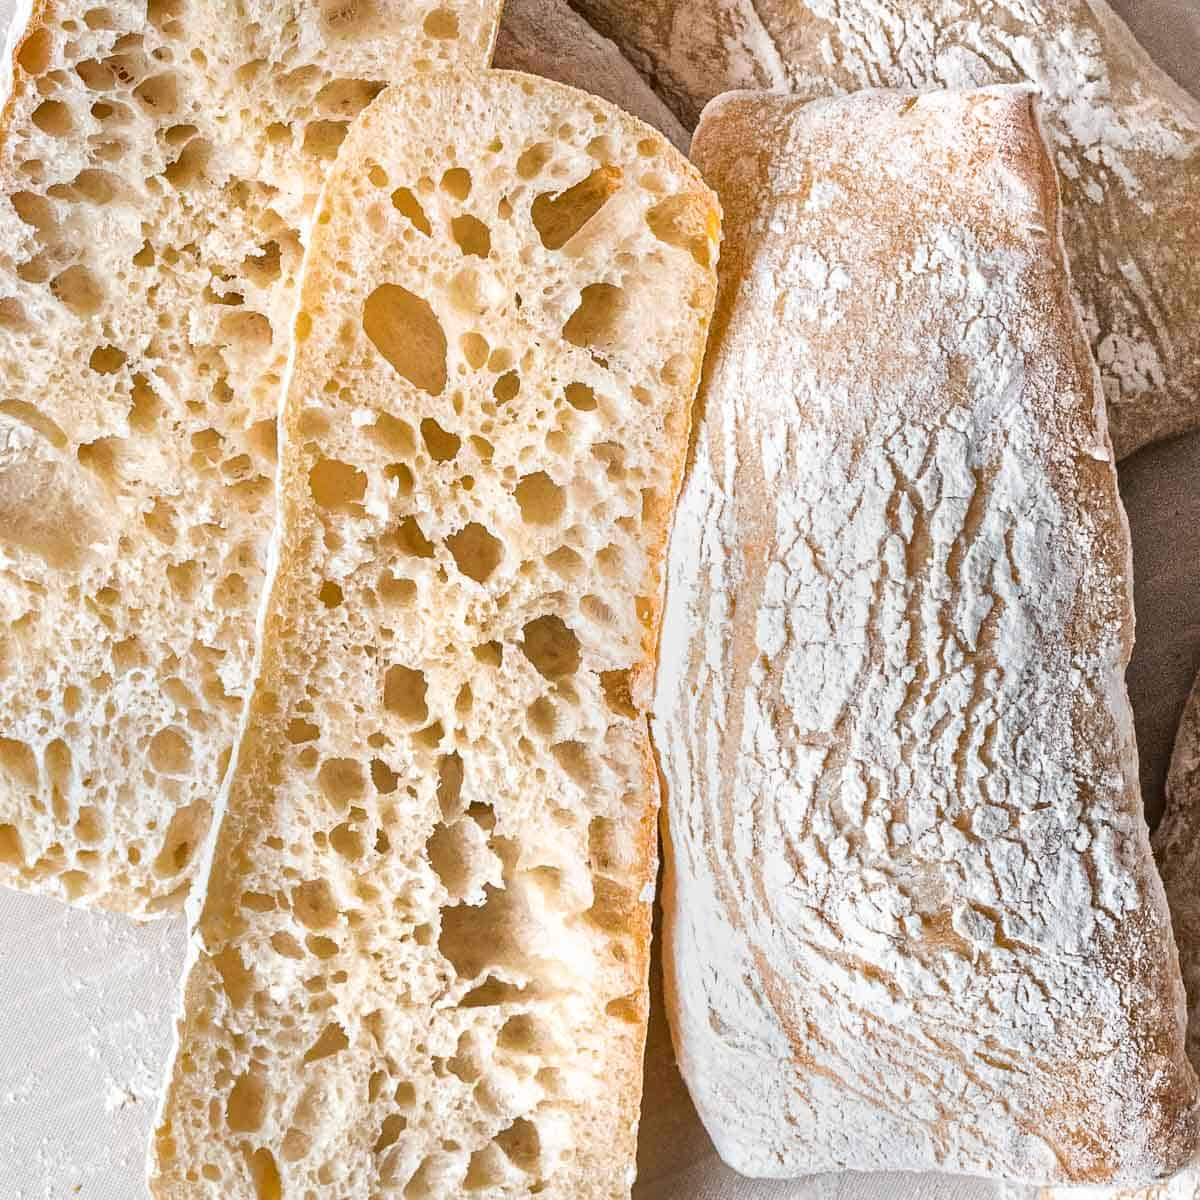 Sourdough ciabatta cut open to reveal large holes to show an open crumb with a crisp, crackly crust.